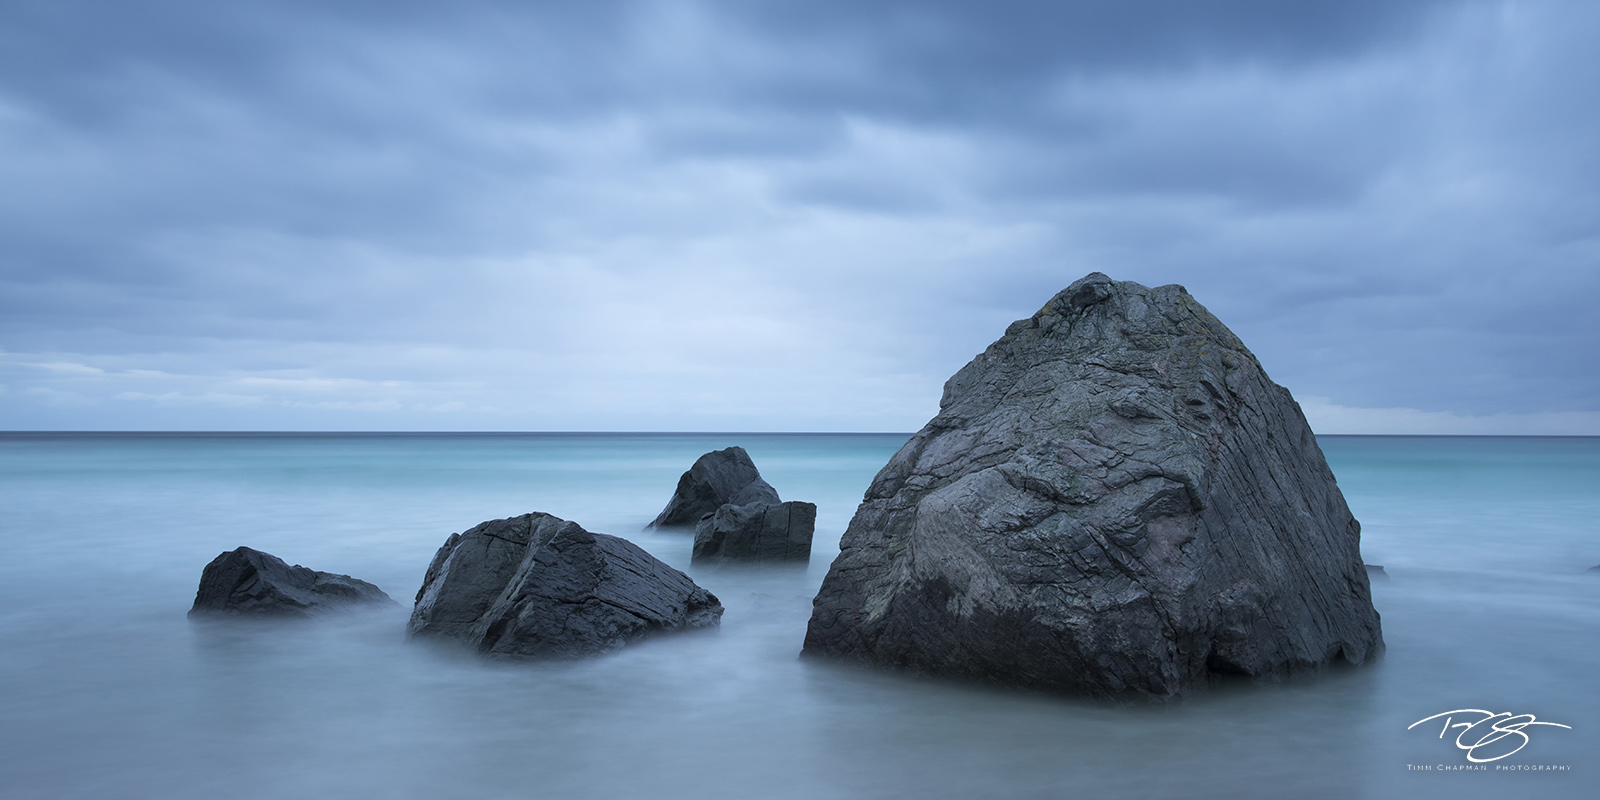 A long exposure calms the normally unruly Norwegian Sea and paints this scene in one of calm, tranquility and peace, while at...